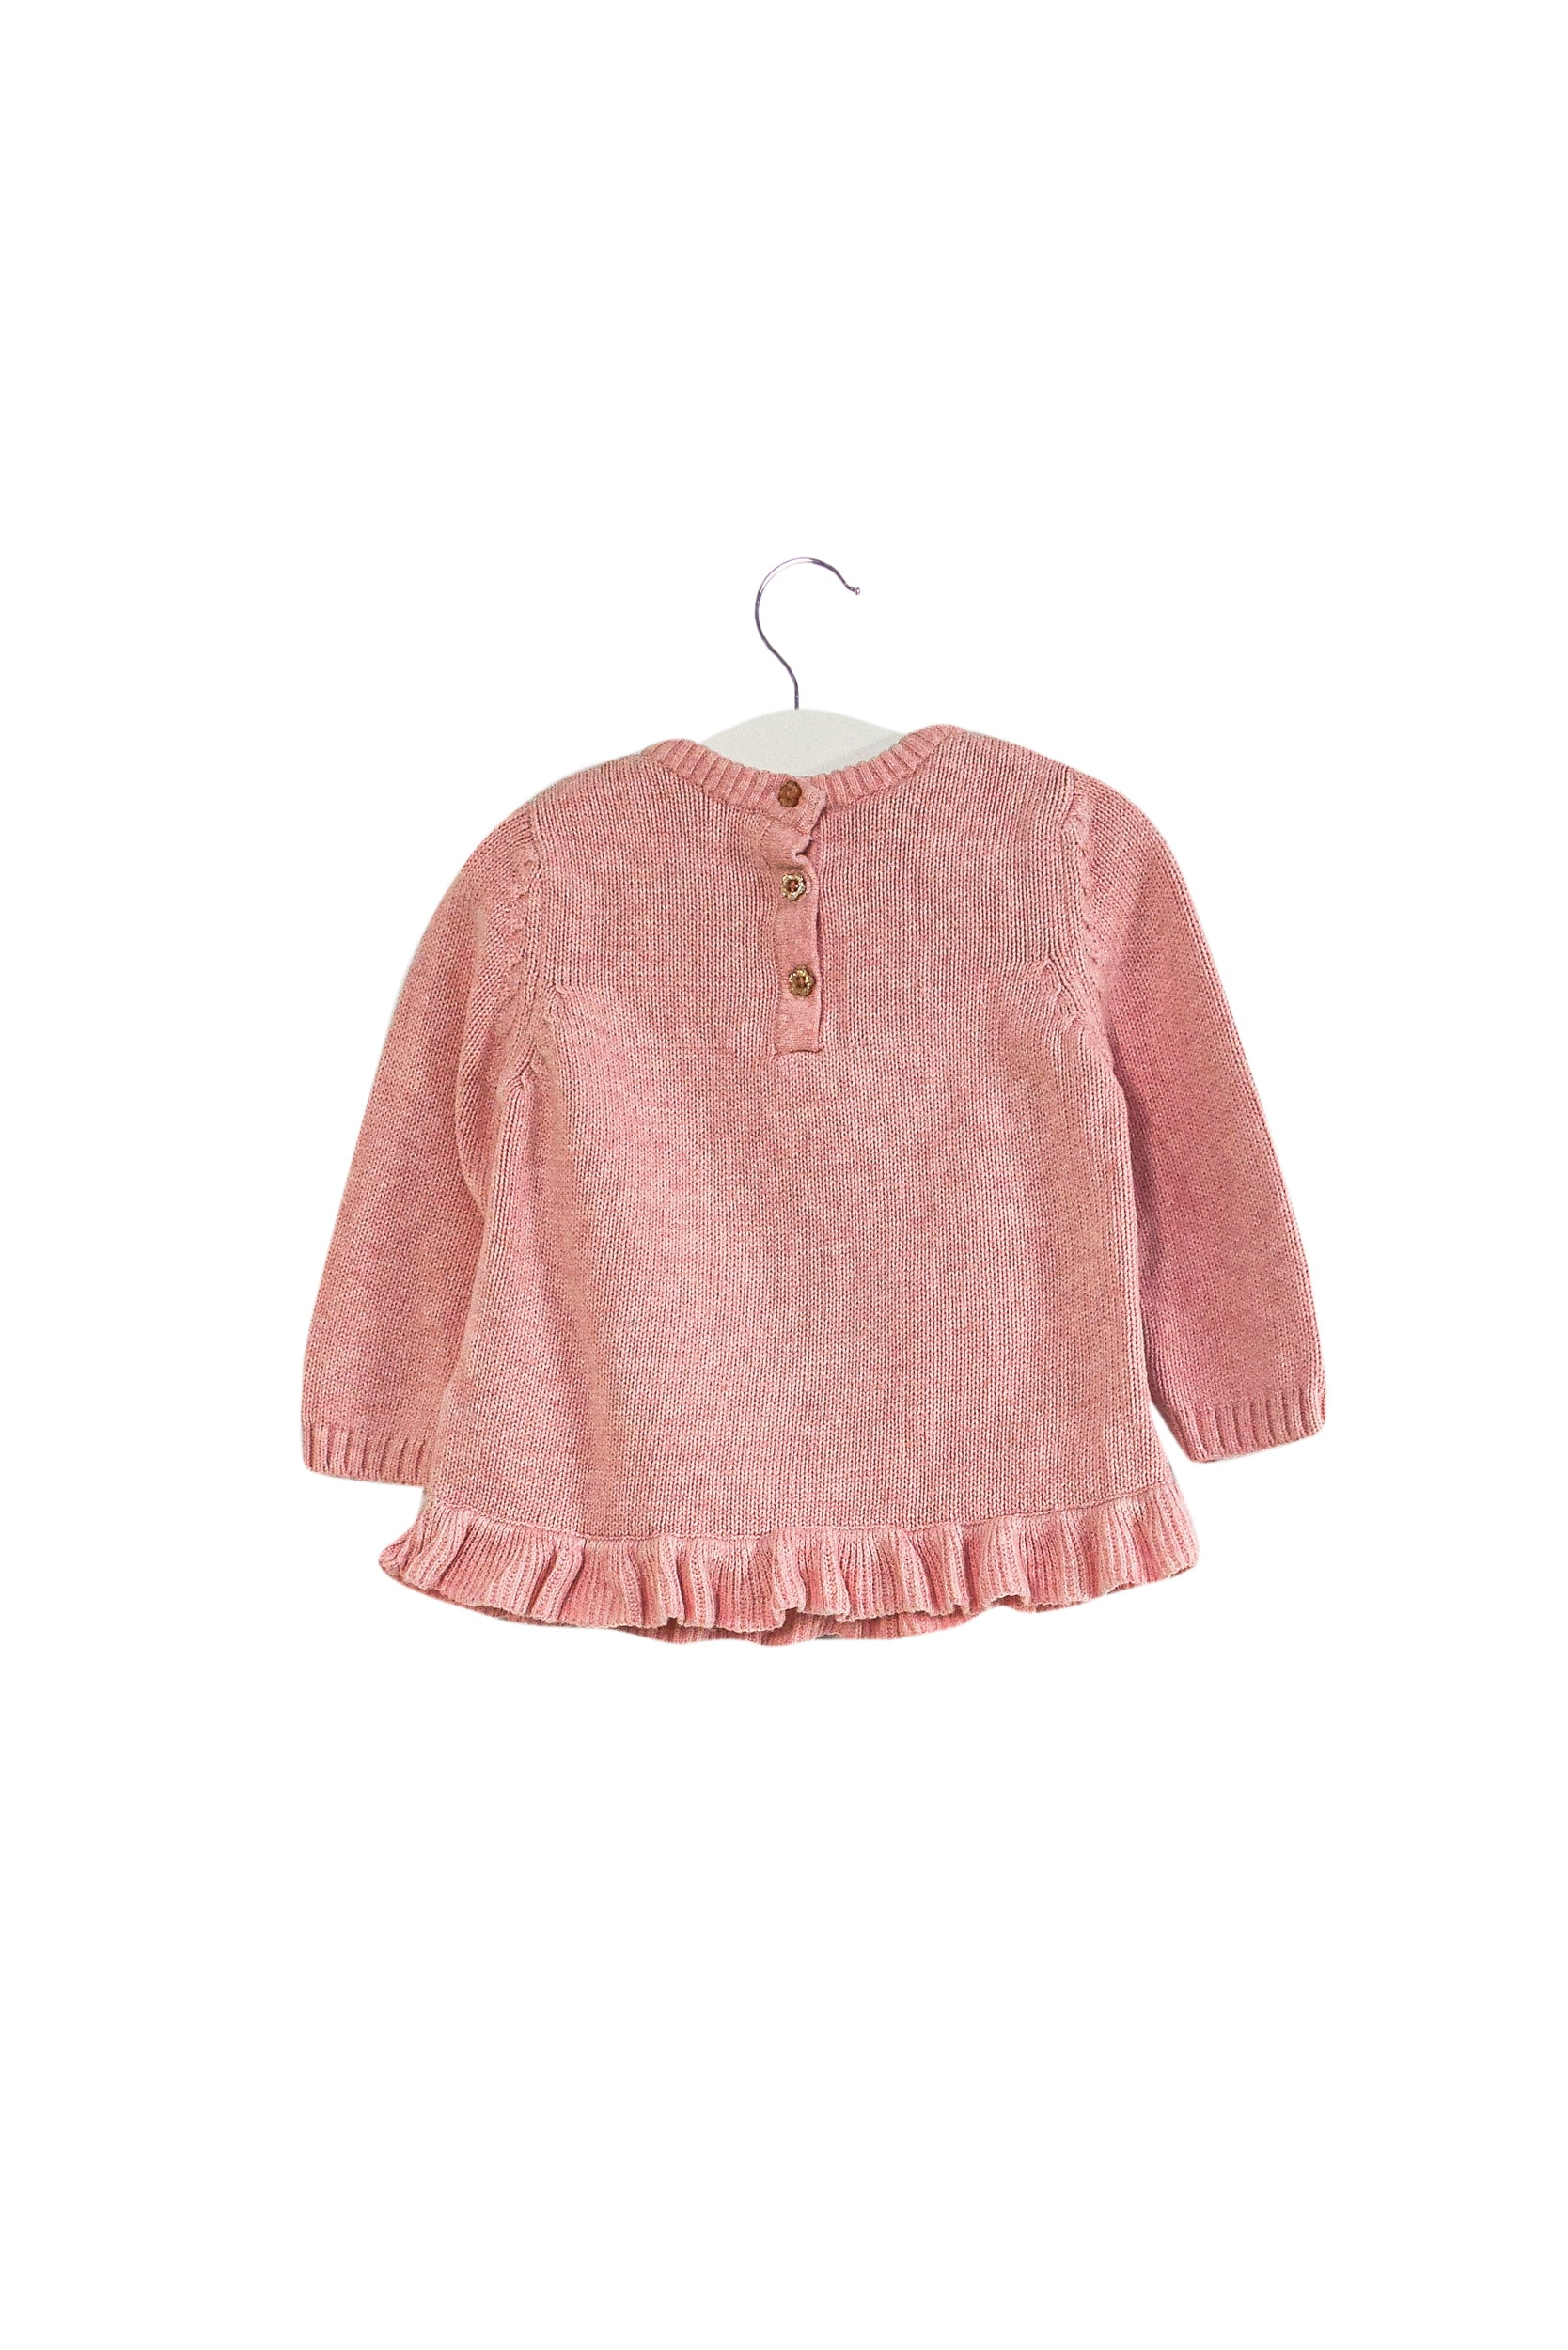 Knit Sweater 3-6M at Retykle